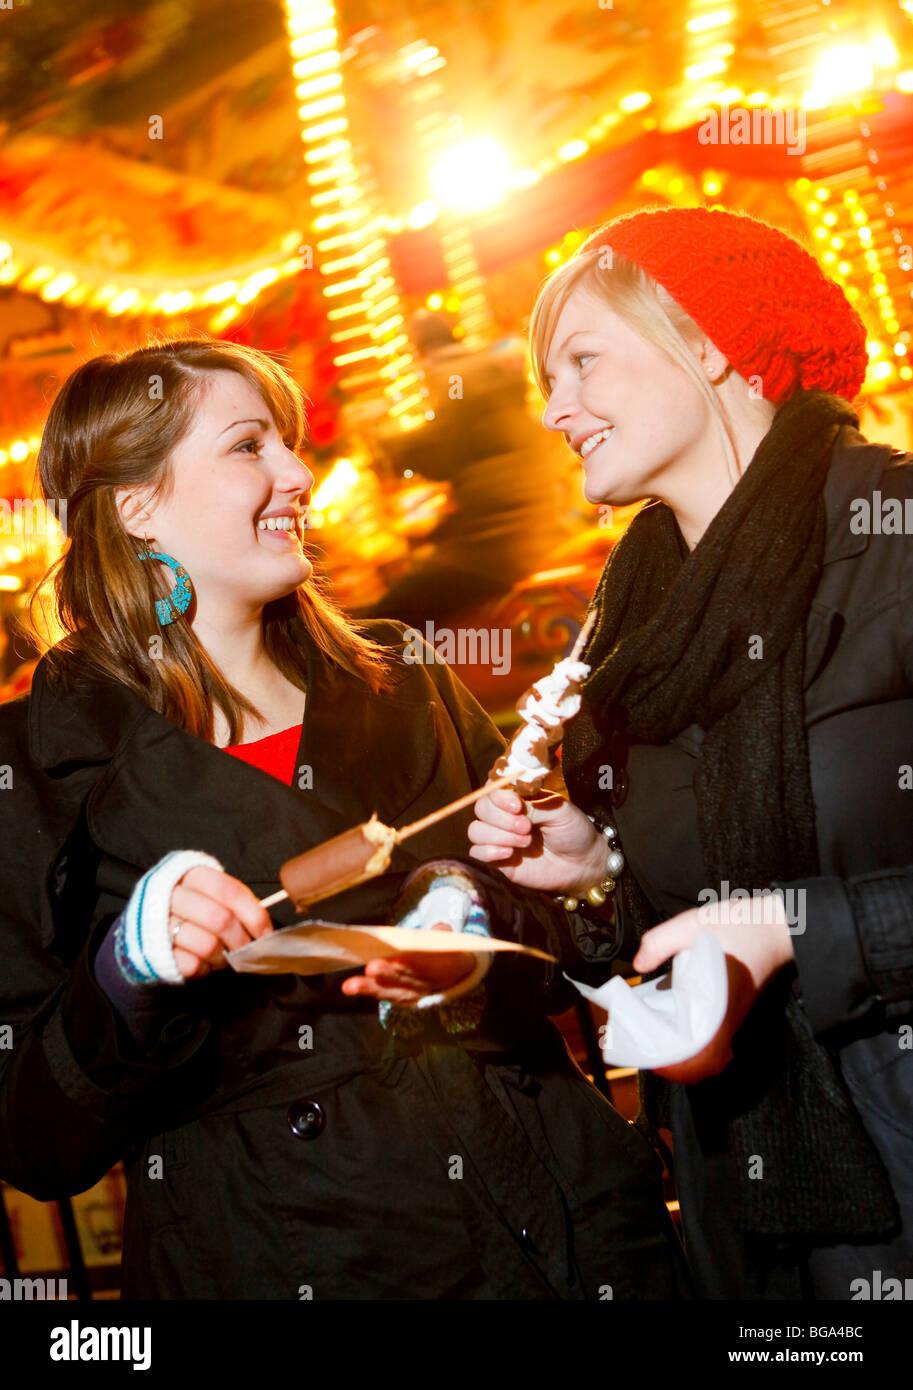 The German Market in Bimingham City Centre at Christmas. Two young women next to the carousel in the market. - Stock Image